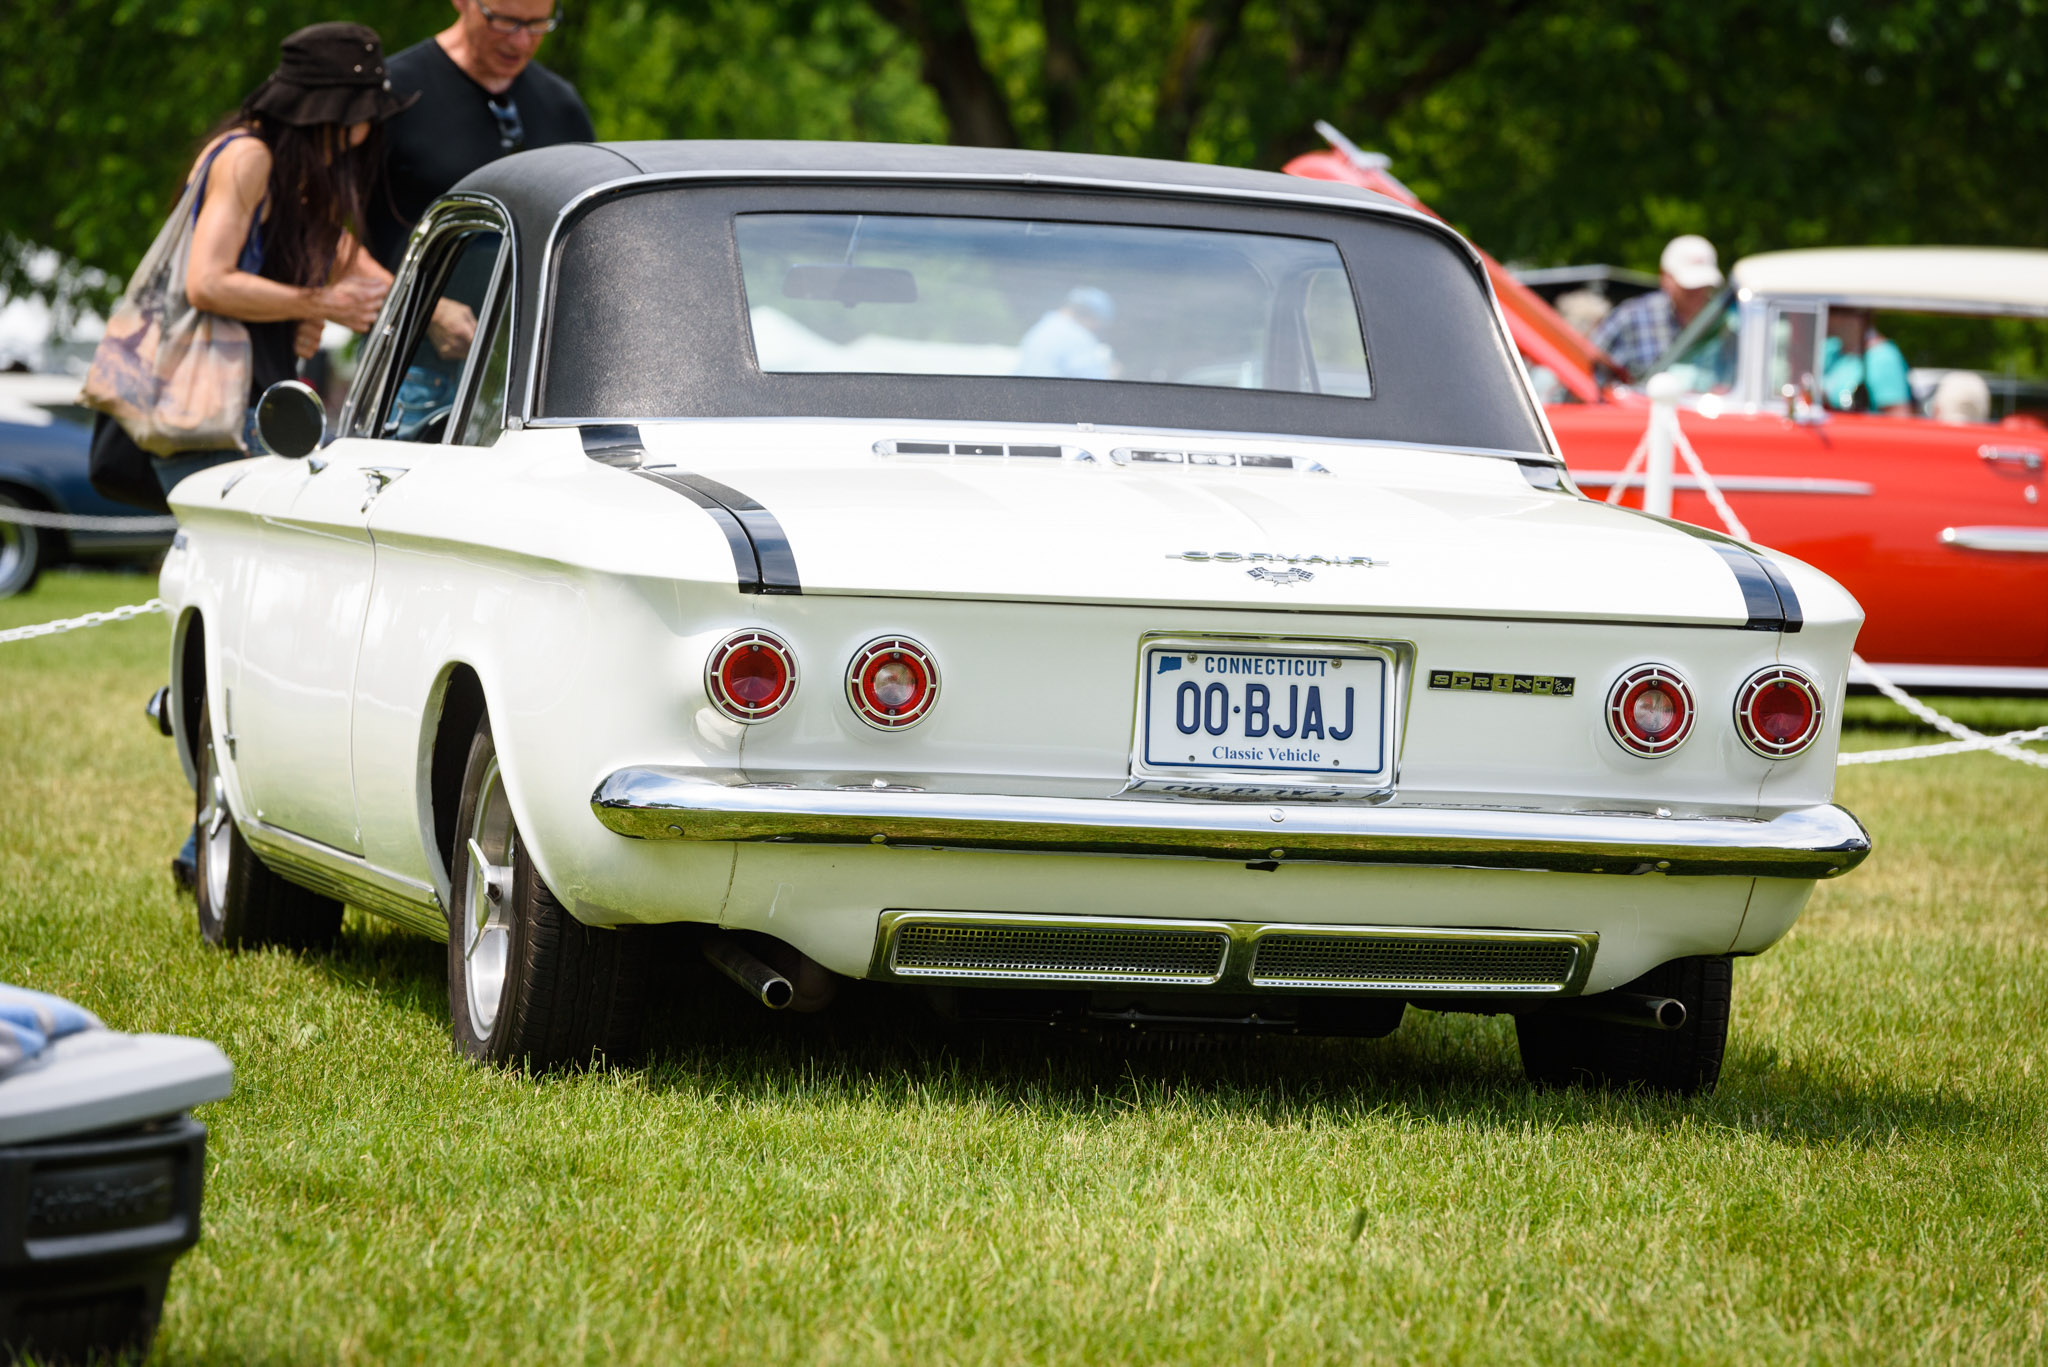 1962 Corvair Monza Fitch Sprint rear 3/4